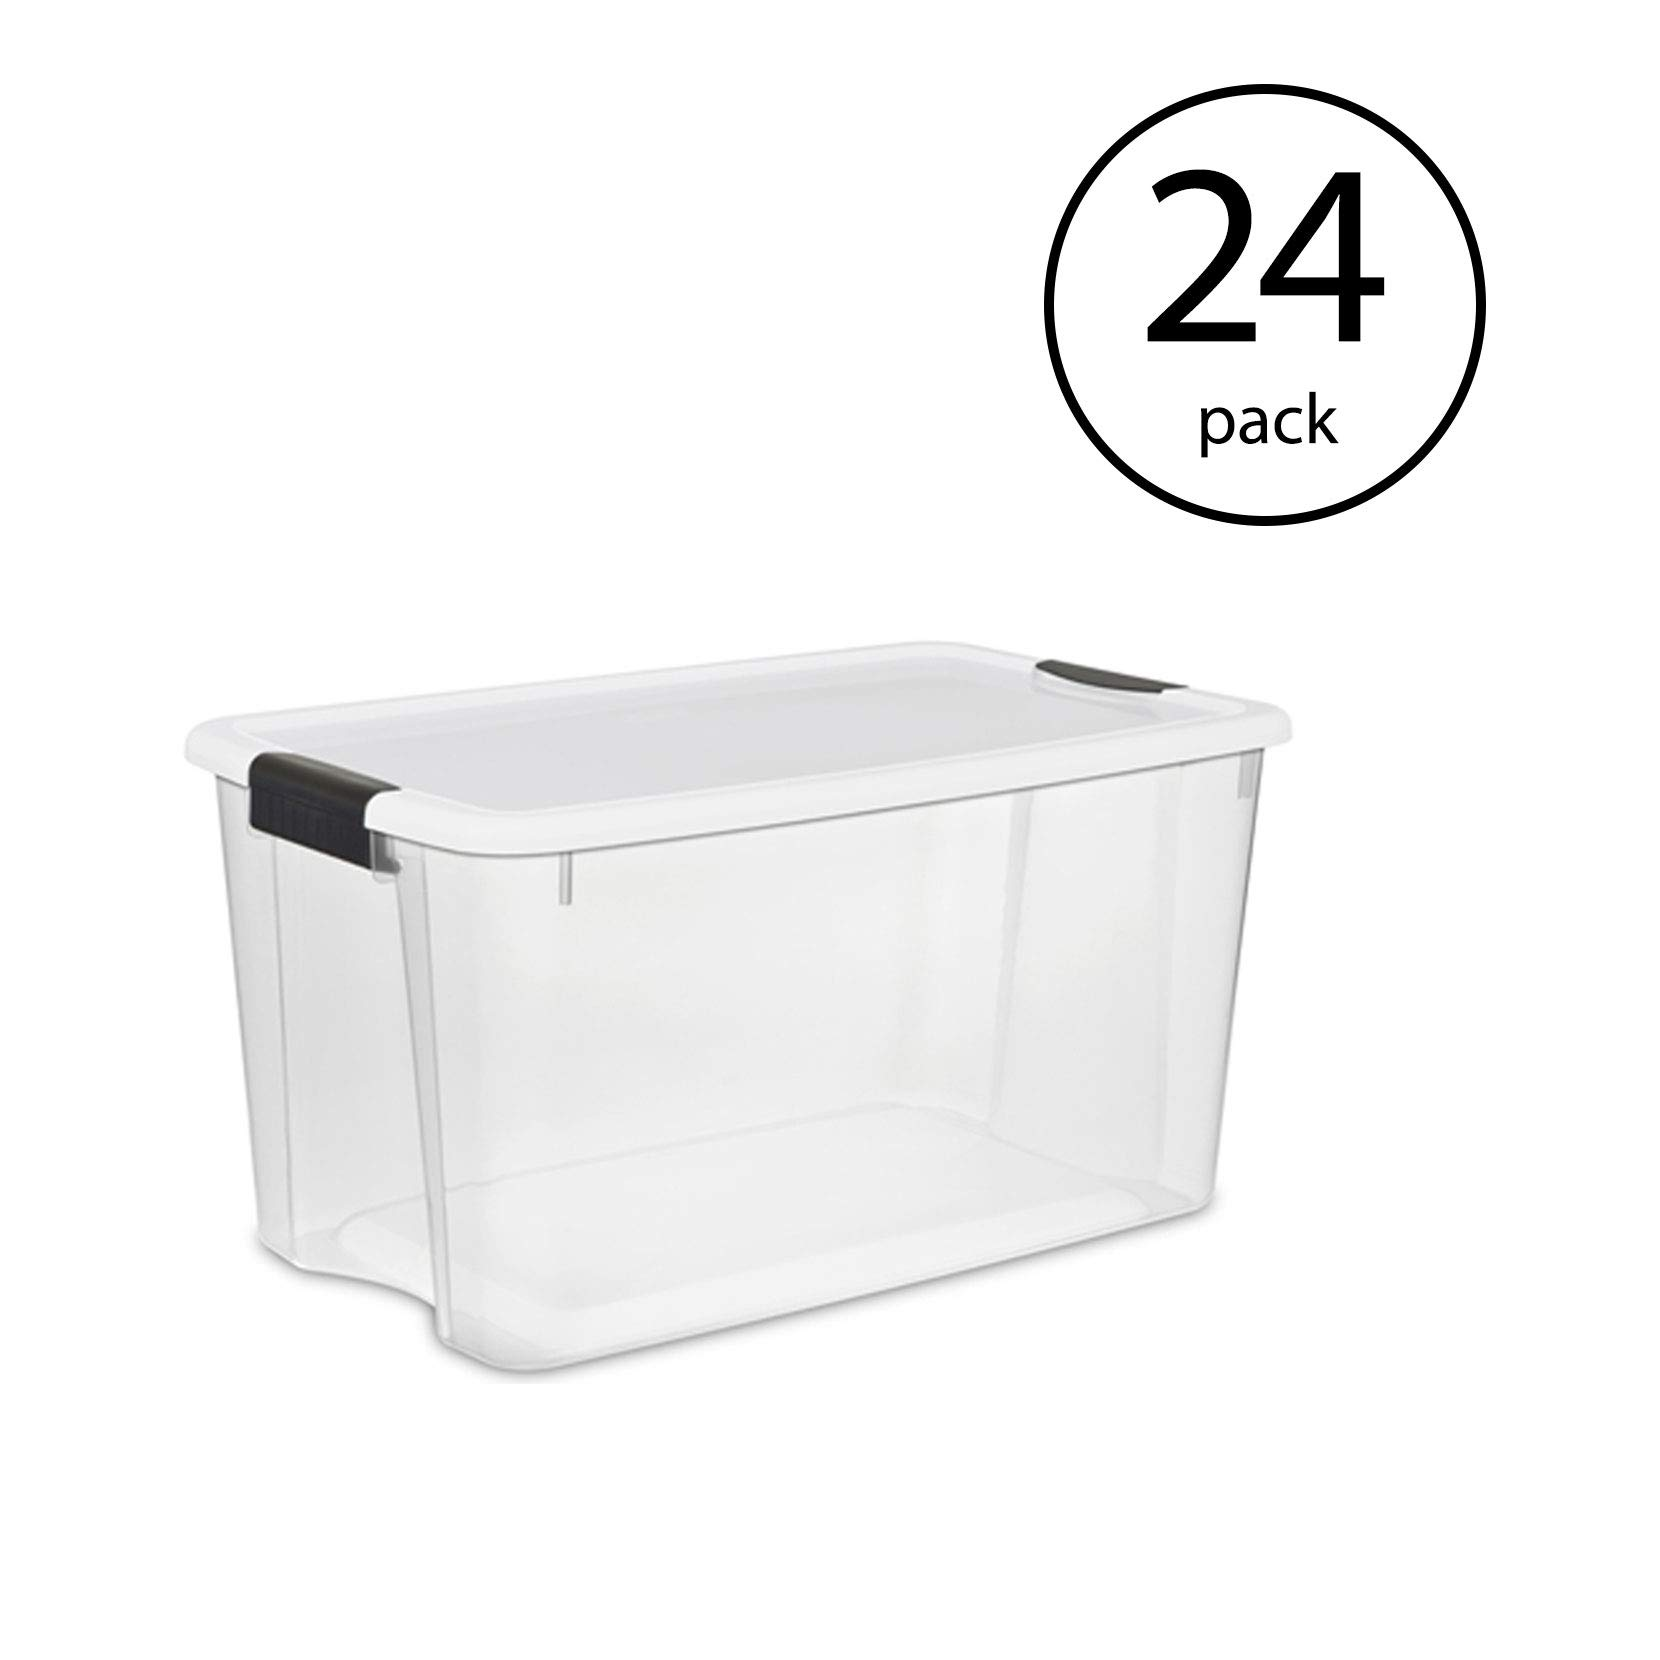 Sterilite 70 Quart Ultra Latch Storage Box with Lid & See-Through Base (24 Pack)